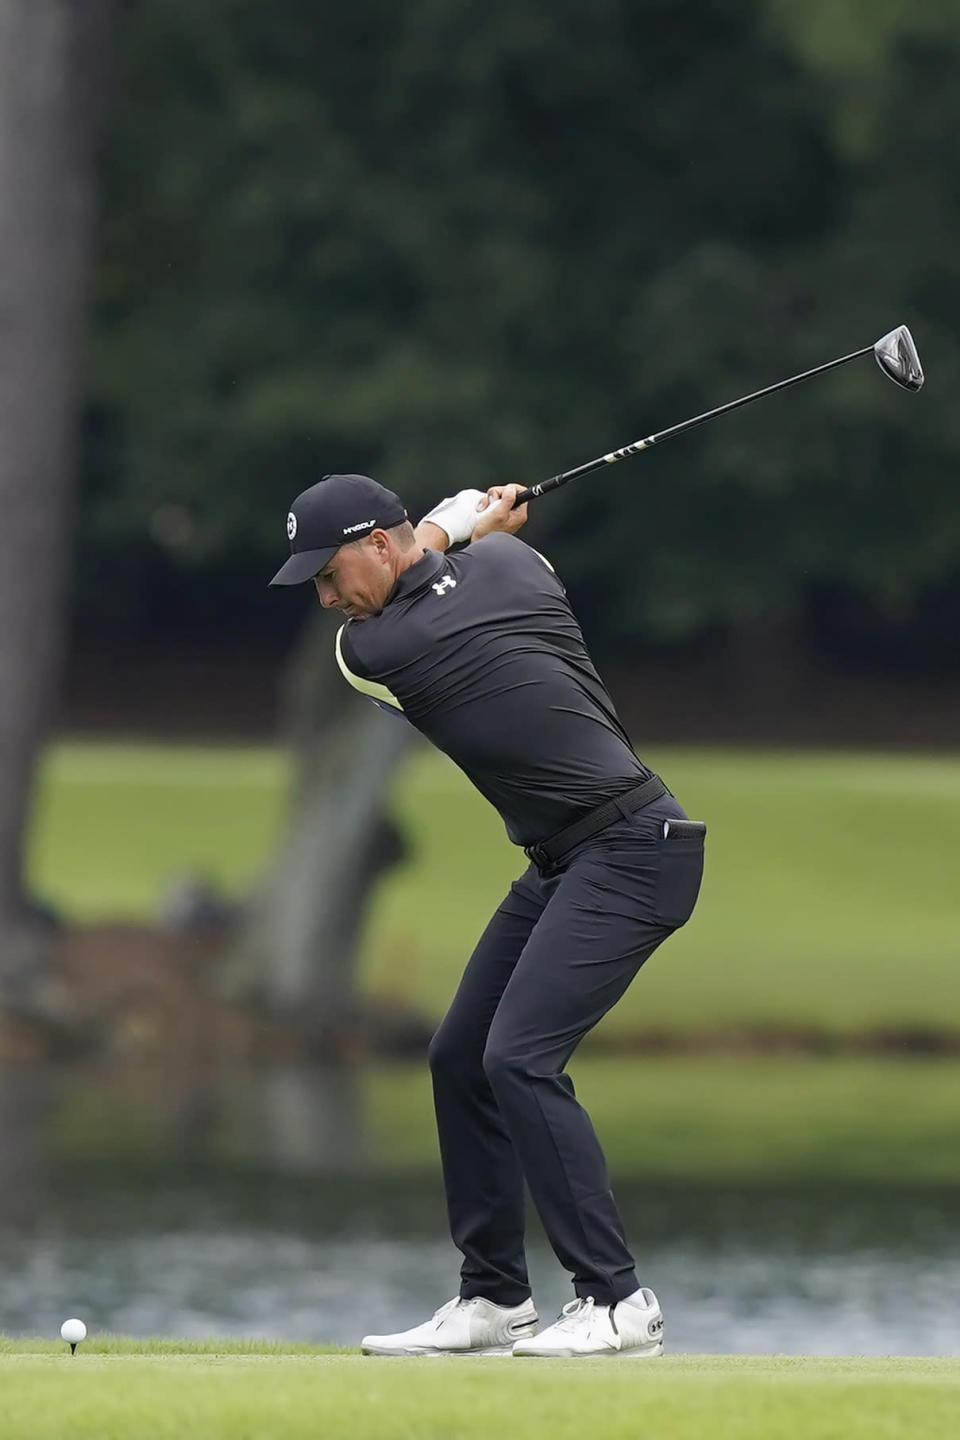 Jordan Spieth hits from the tee on the 16th hole during second round play in the Tour Championship golf tournament at East Lake Golf Club, Friday, Sept. 3, 2021, in Atlanta. (AP Photo/Brynn Anderson)